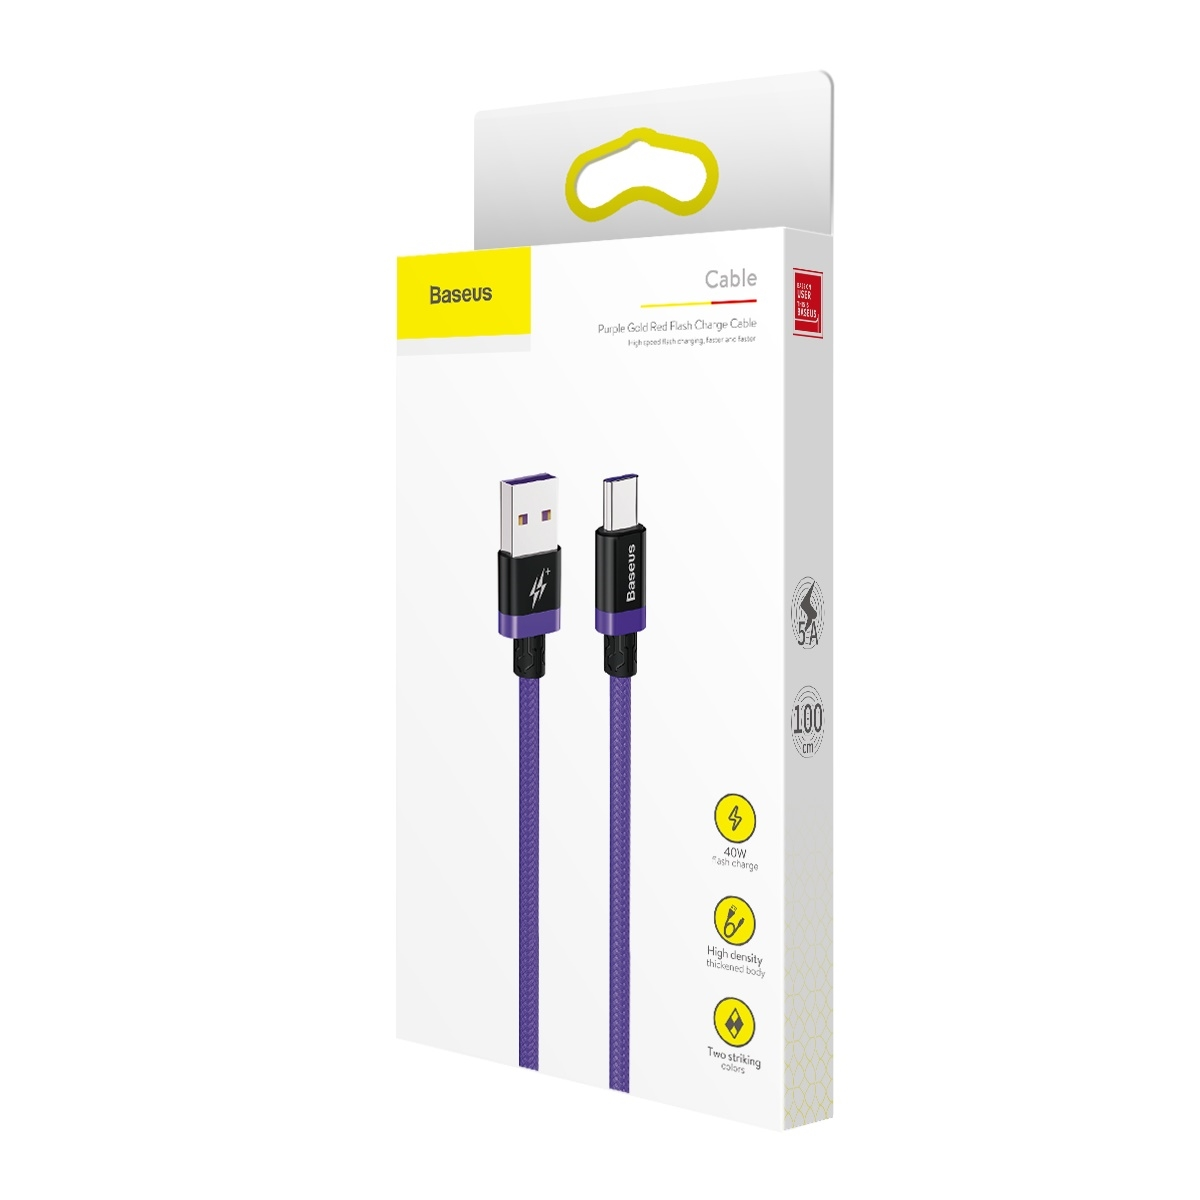 Baseus Purple Gold Red HW flash charge cable USB For Type-C 40W 1m Red CATZH-A09